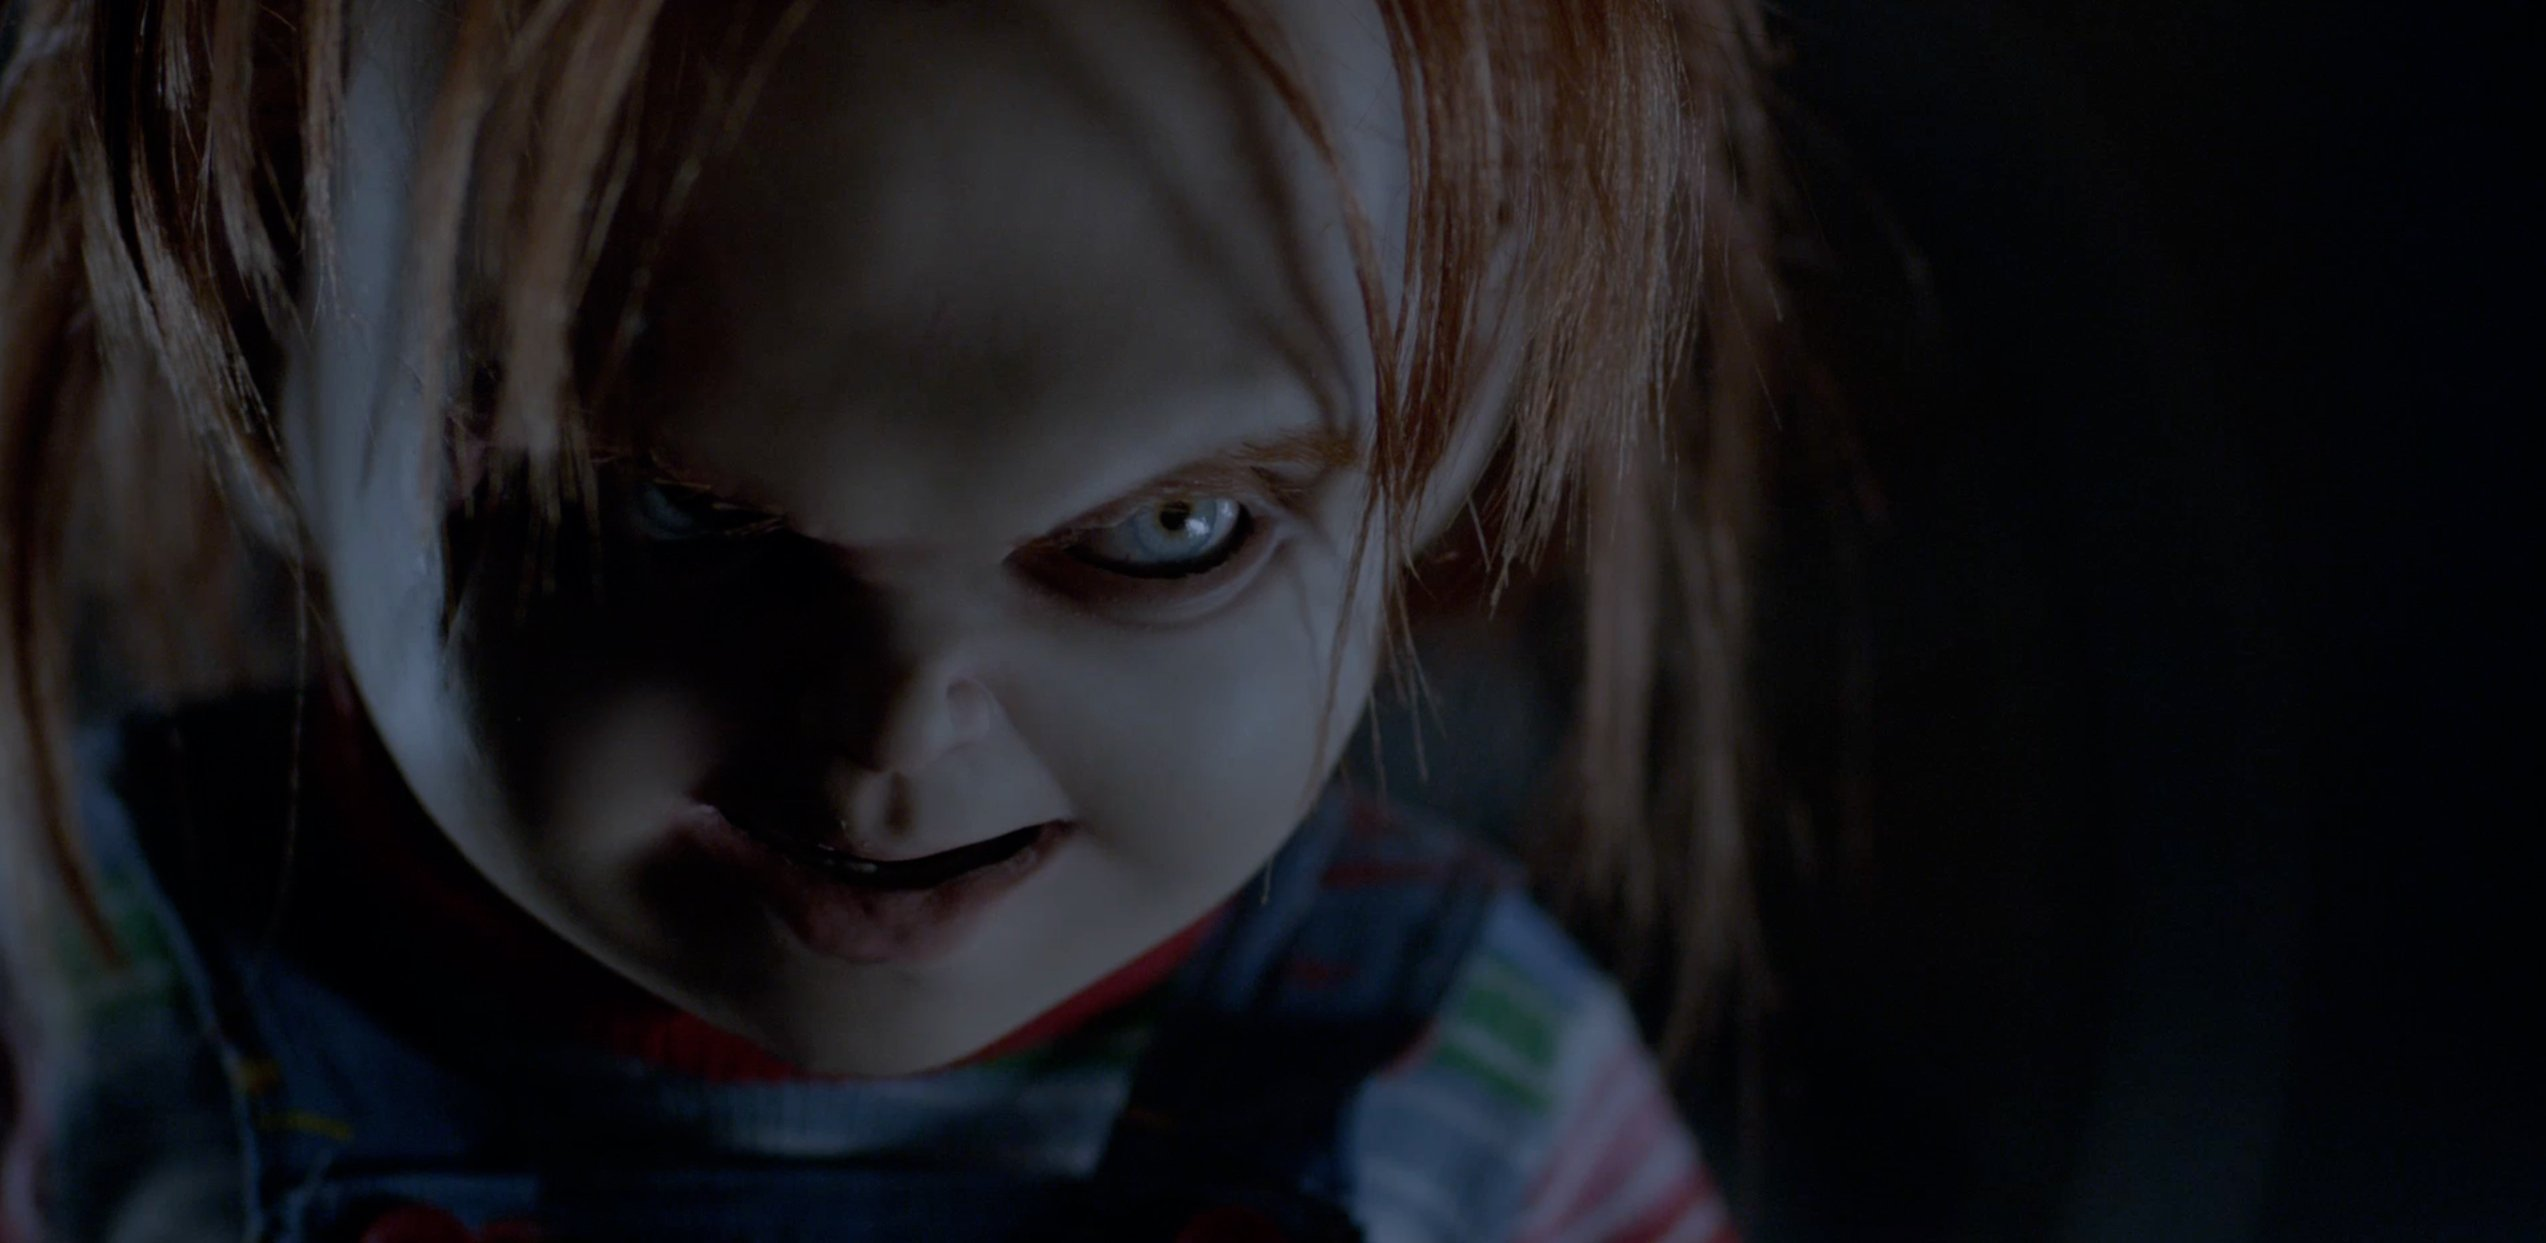 5 Reasons Why: Curse of Chucky is the Best Child's Play Sequel